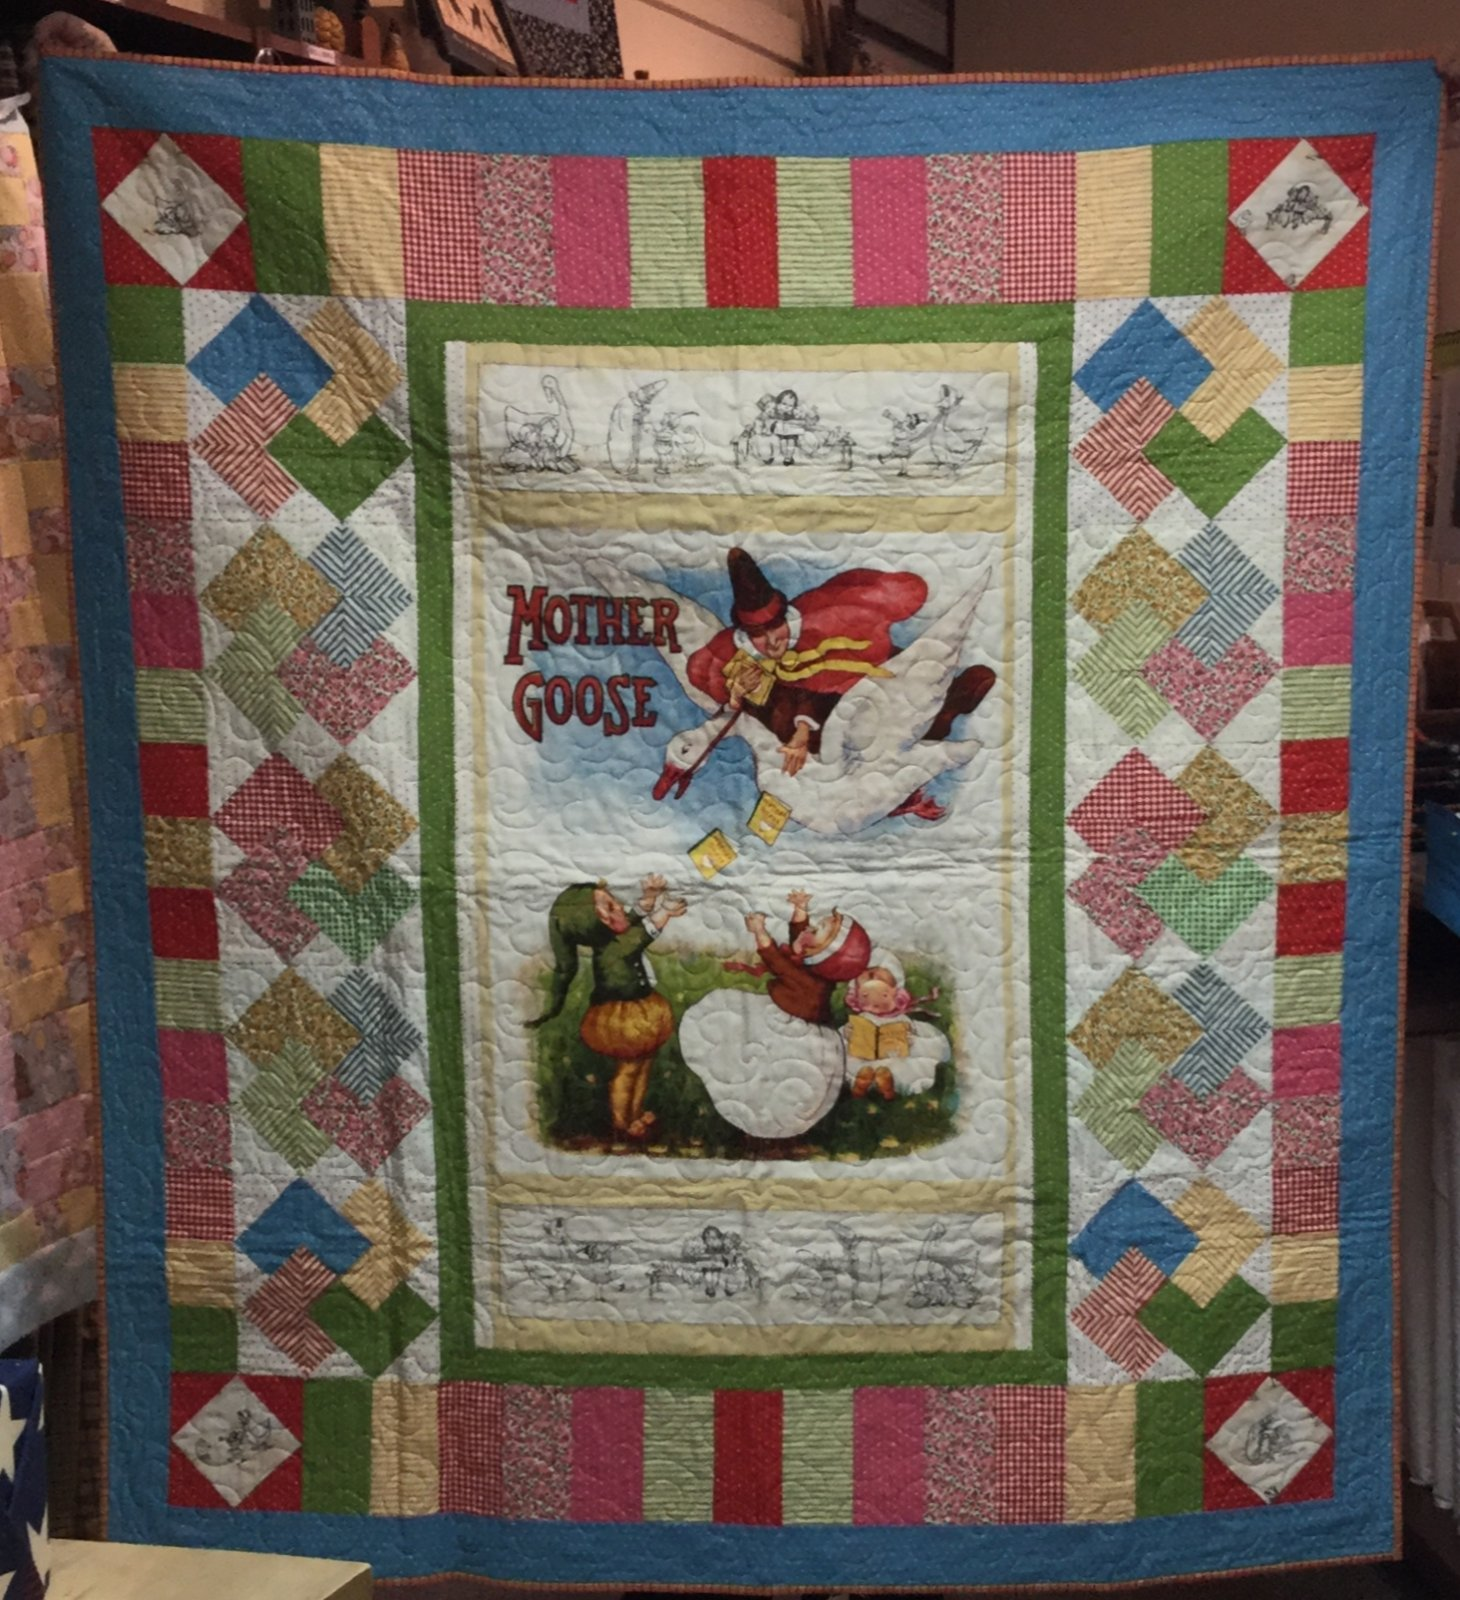 Mother Goose Quilt (56 x 56, includes 2 books)